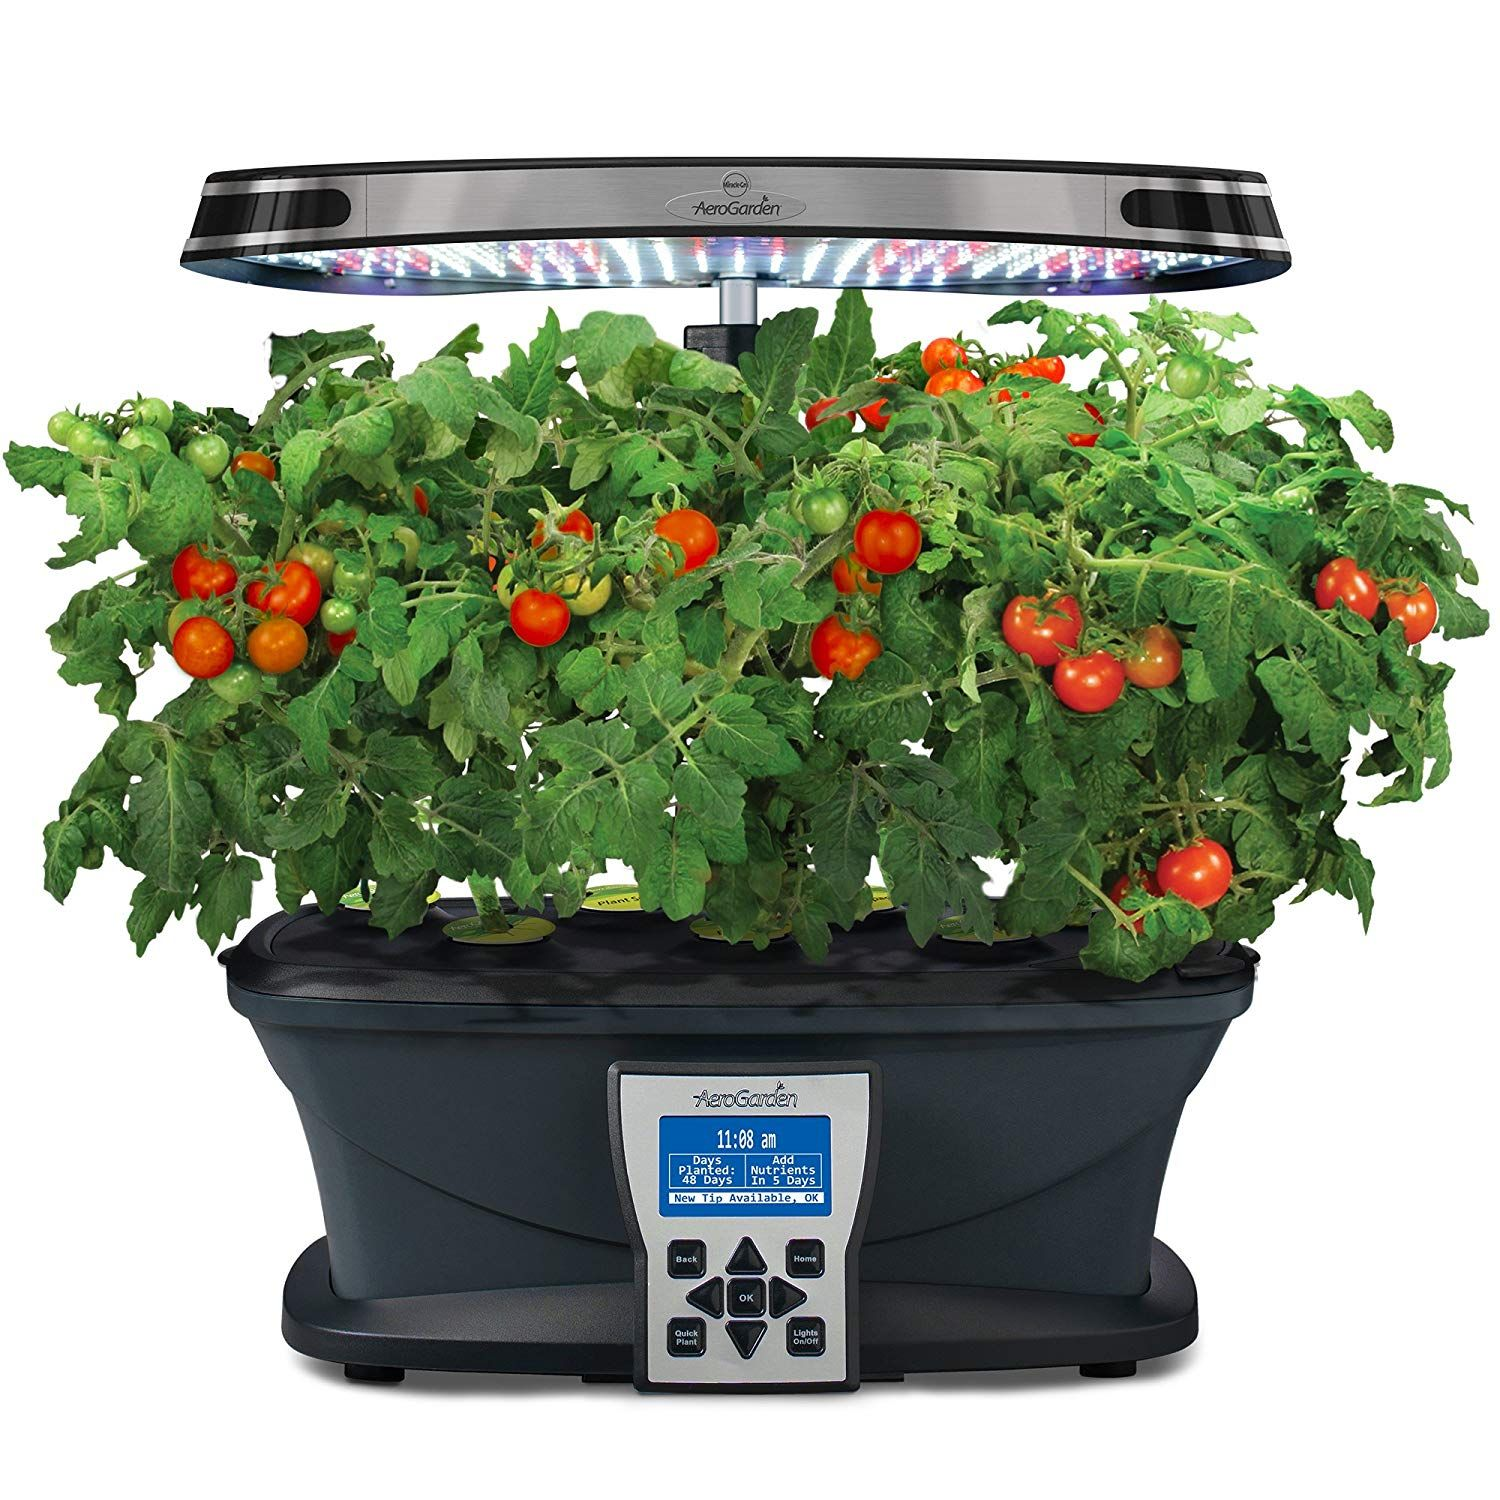 Pin by SHOPandSAVE on SHOP AND SAVE Smart garden, Herb